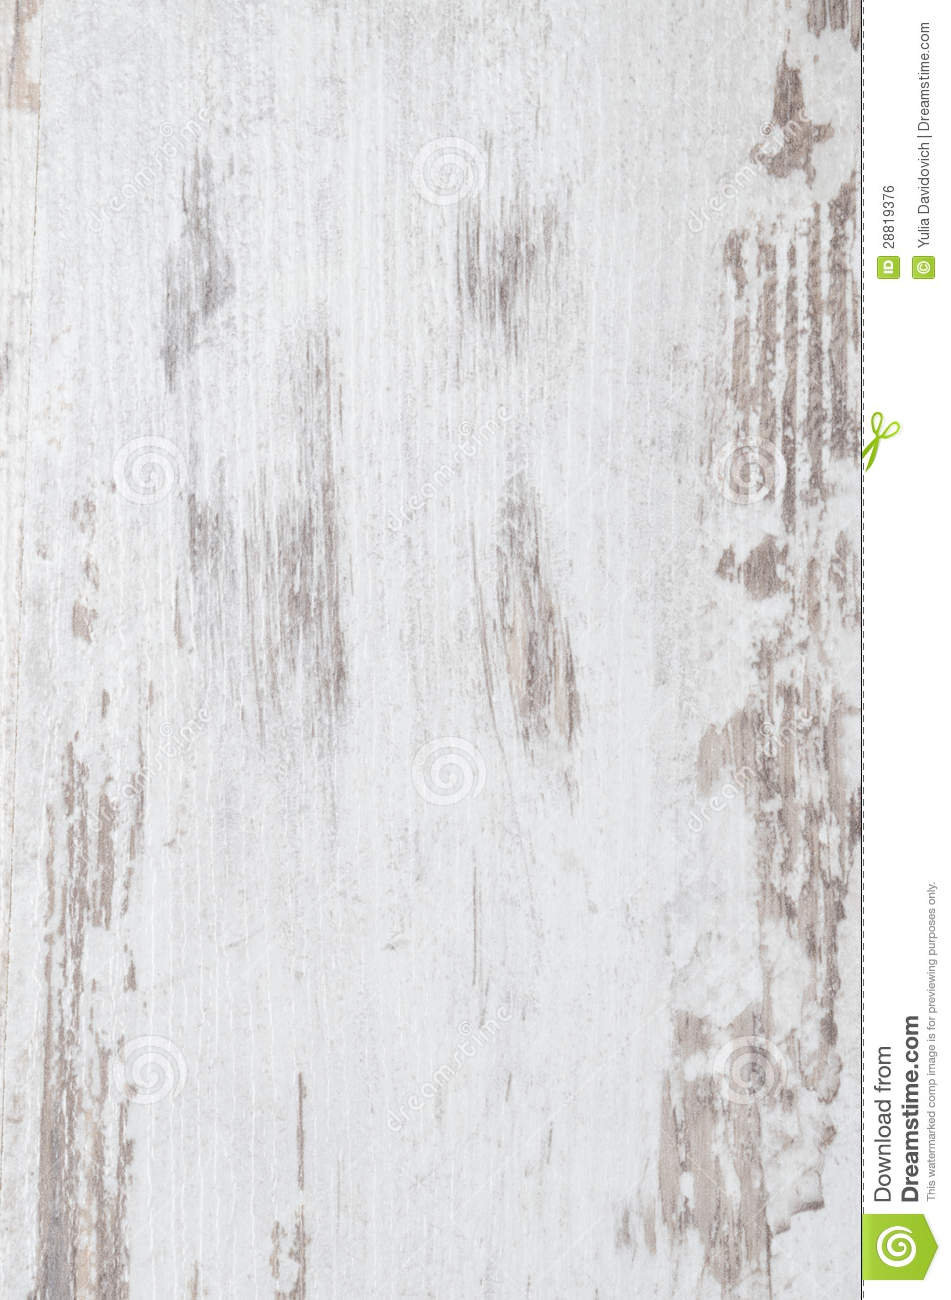 texture en bois fond en bois blanc photo stock image du fibre tage 28819376. Black Bedroom Furniture Sets. Home Design Ideas